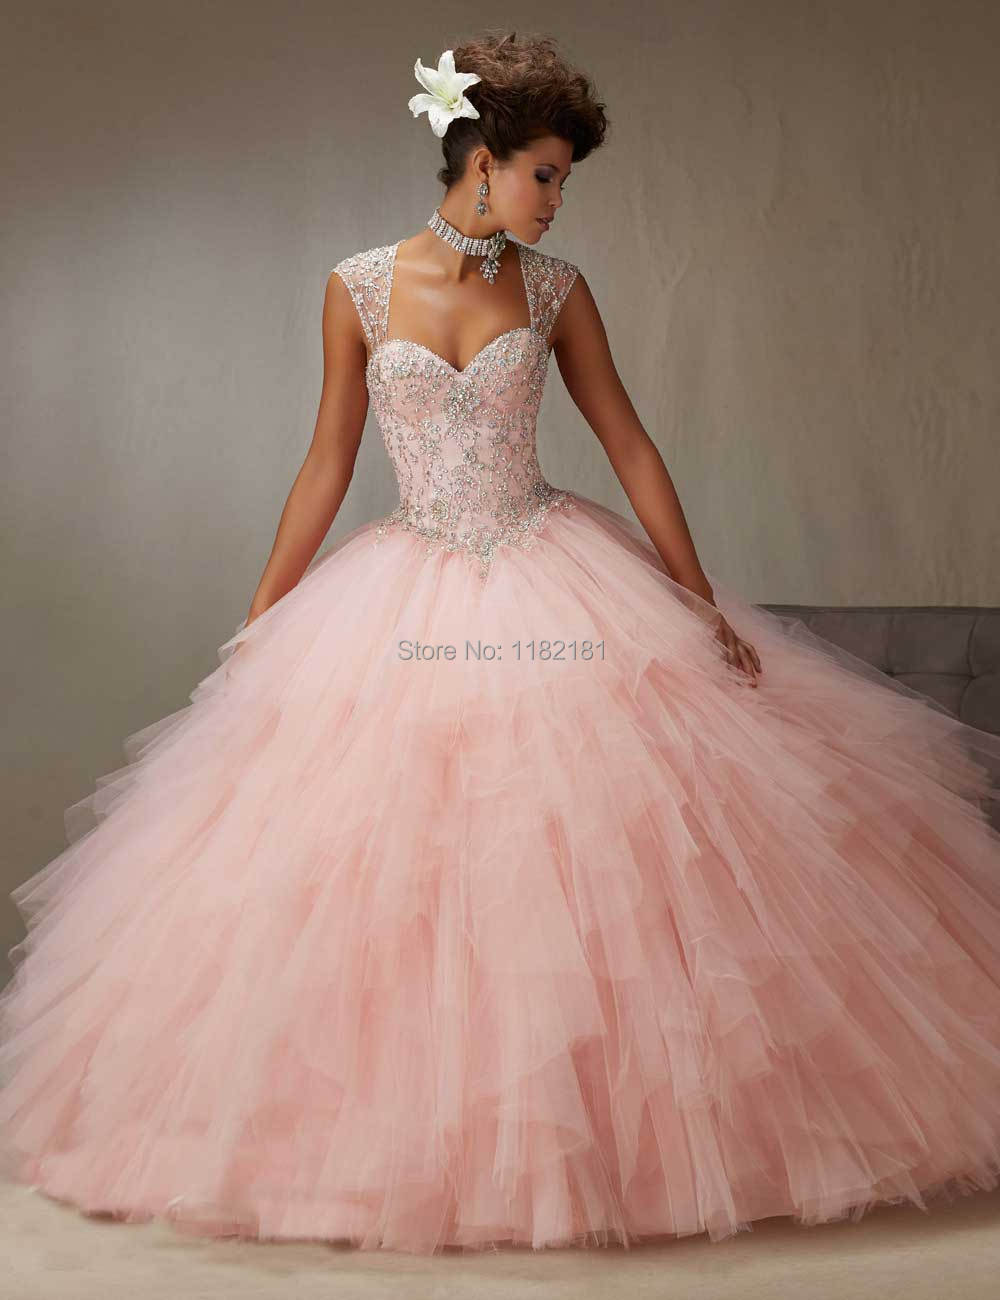 Removable Strap Corset Bodice Ball Gown Girls Quinceanera Dress Pink Sweetheart Cheap Sweet 16